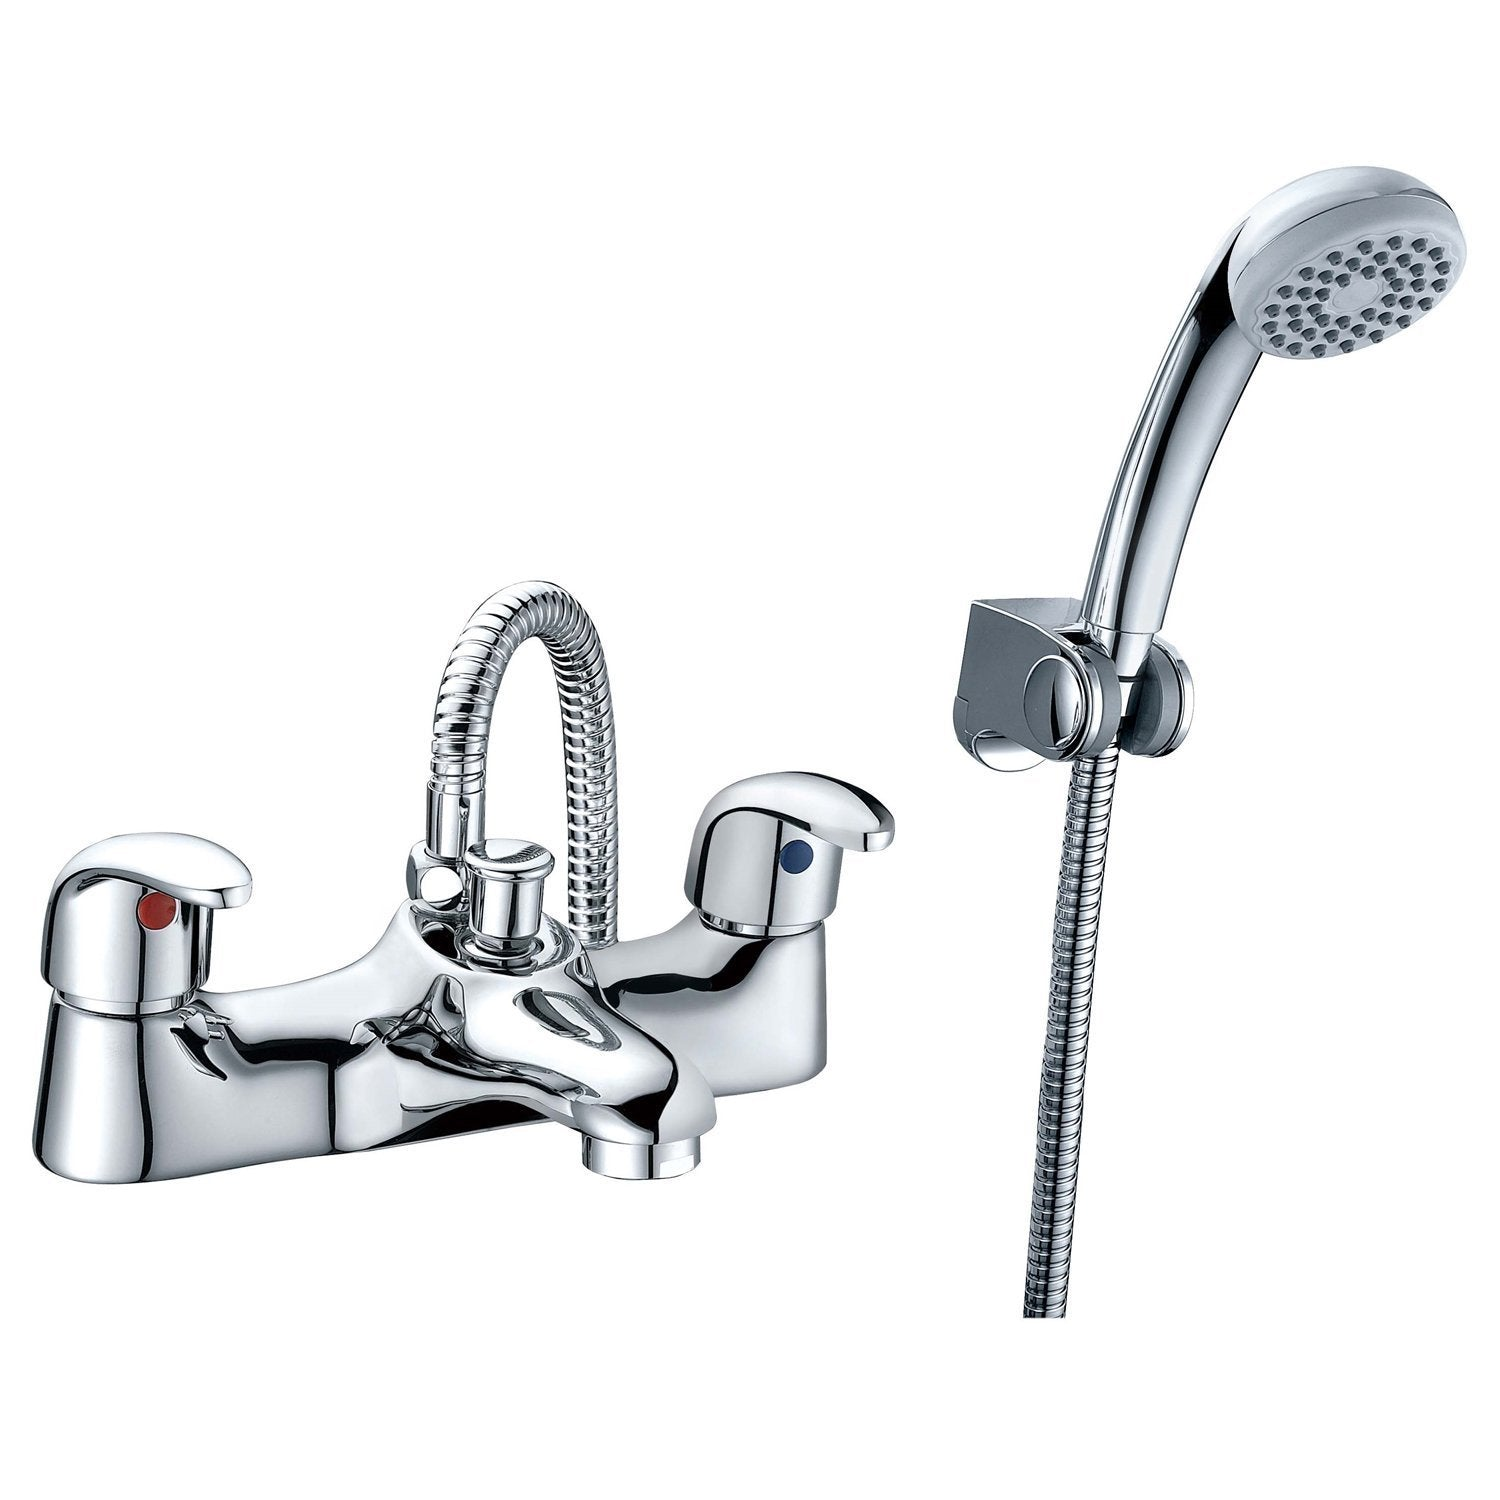 RAK Basic Bath Shower Mixer with Shower Head and Hose - Chrome